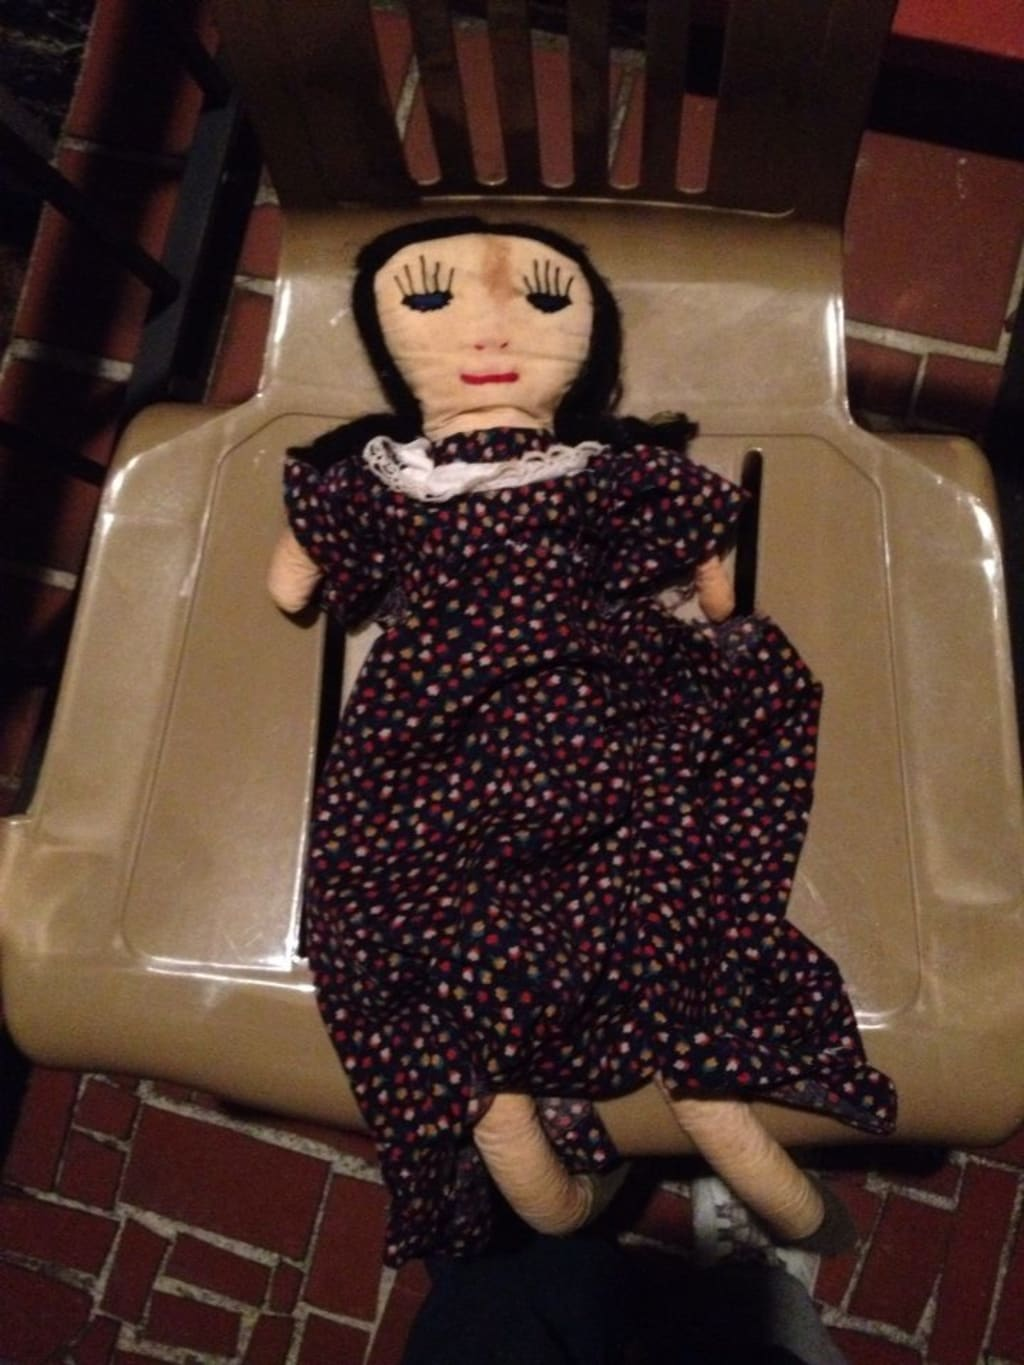 This doll may give Annabelle a run for her money